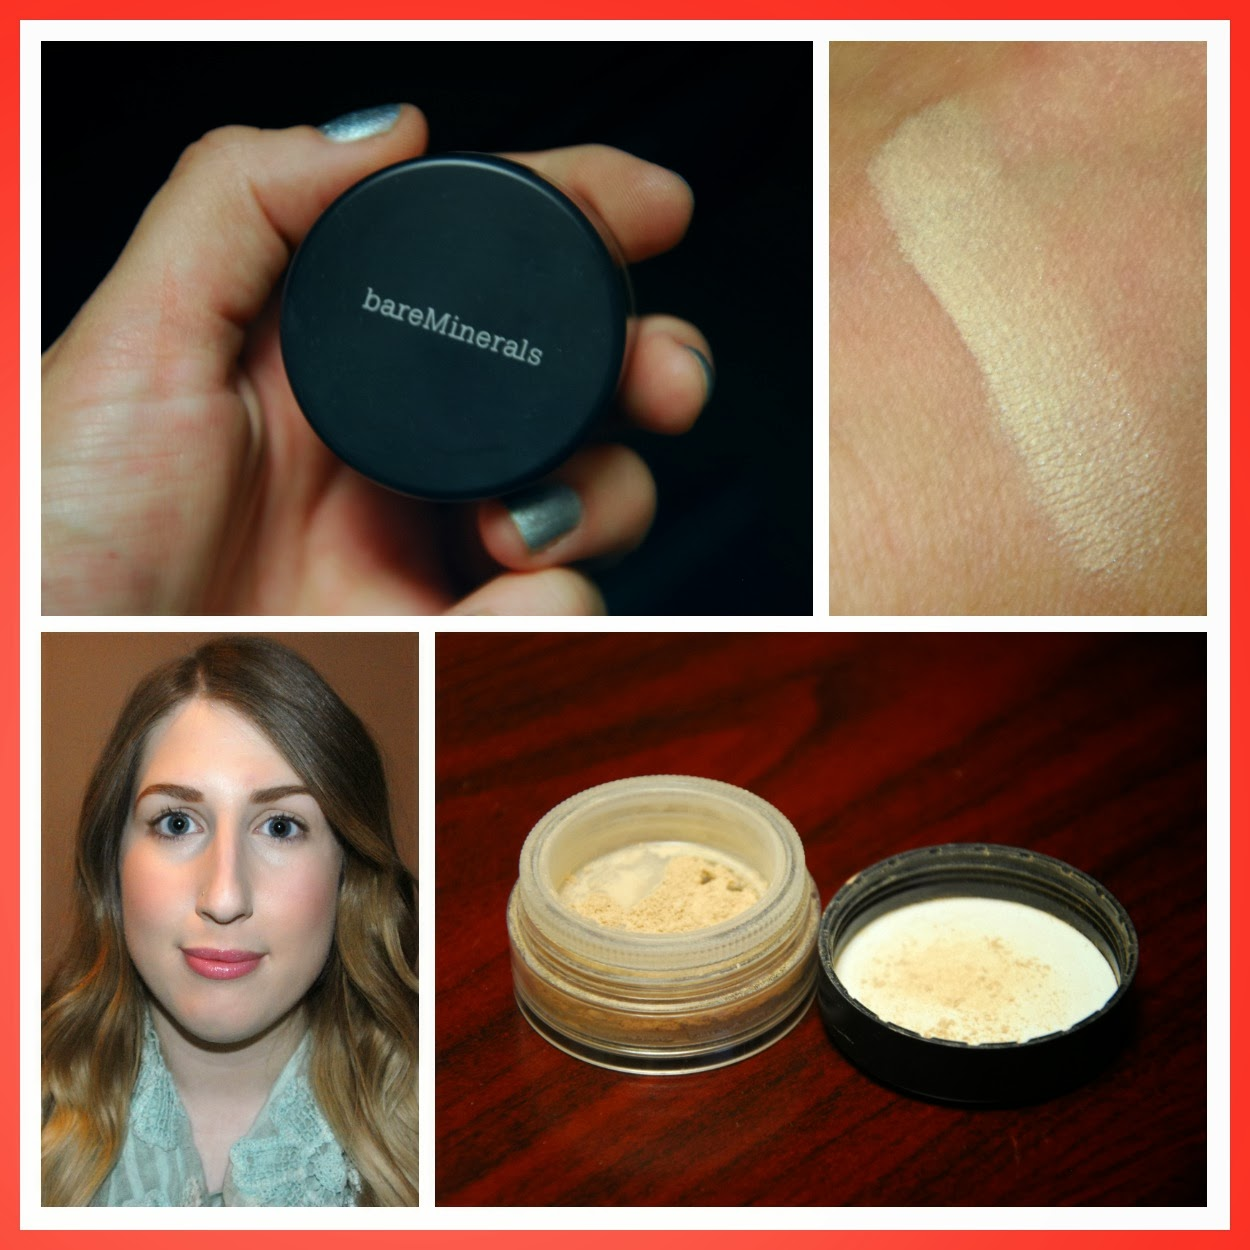 bareMinerals SPF 20 Eye Brightener, Well - Rested, Review and Swatch